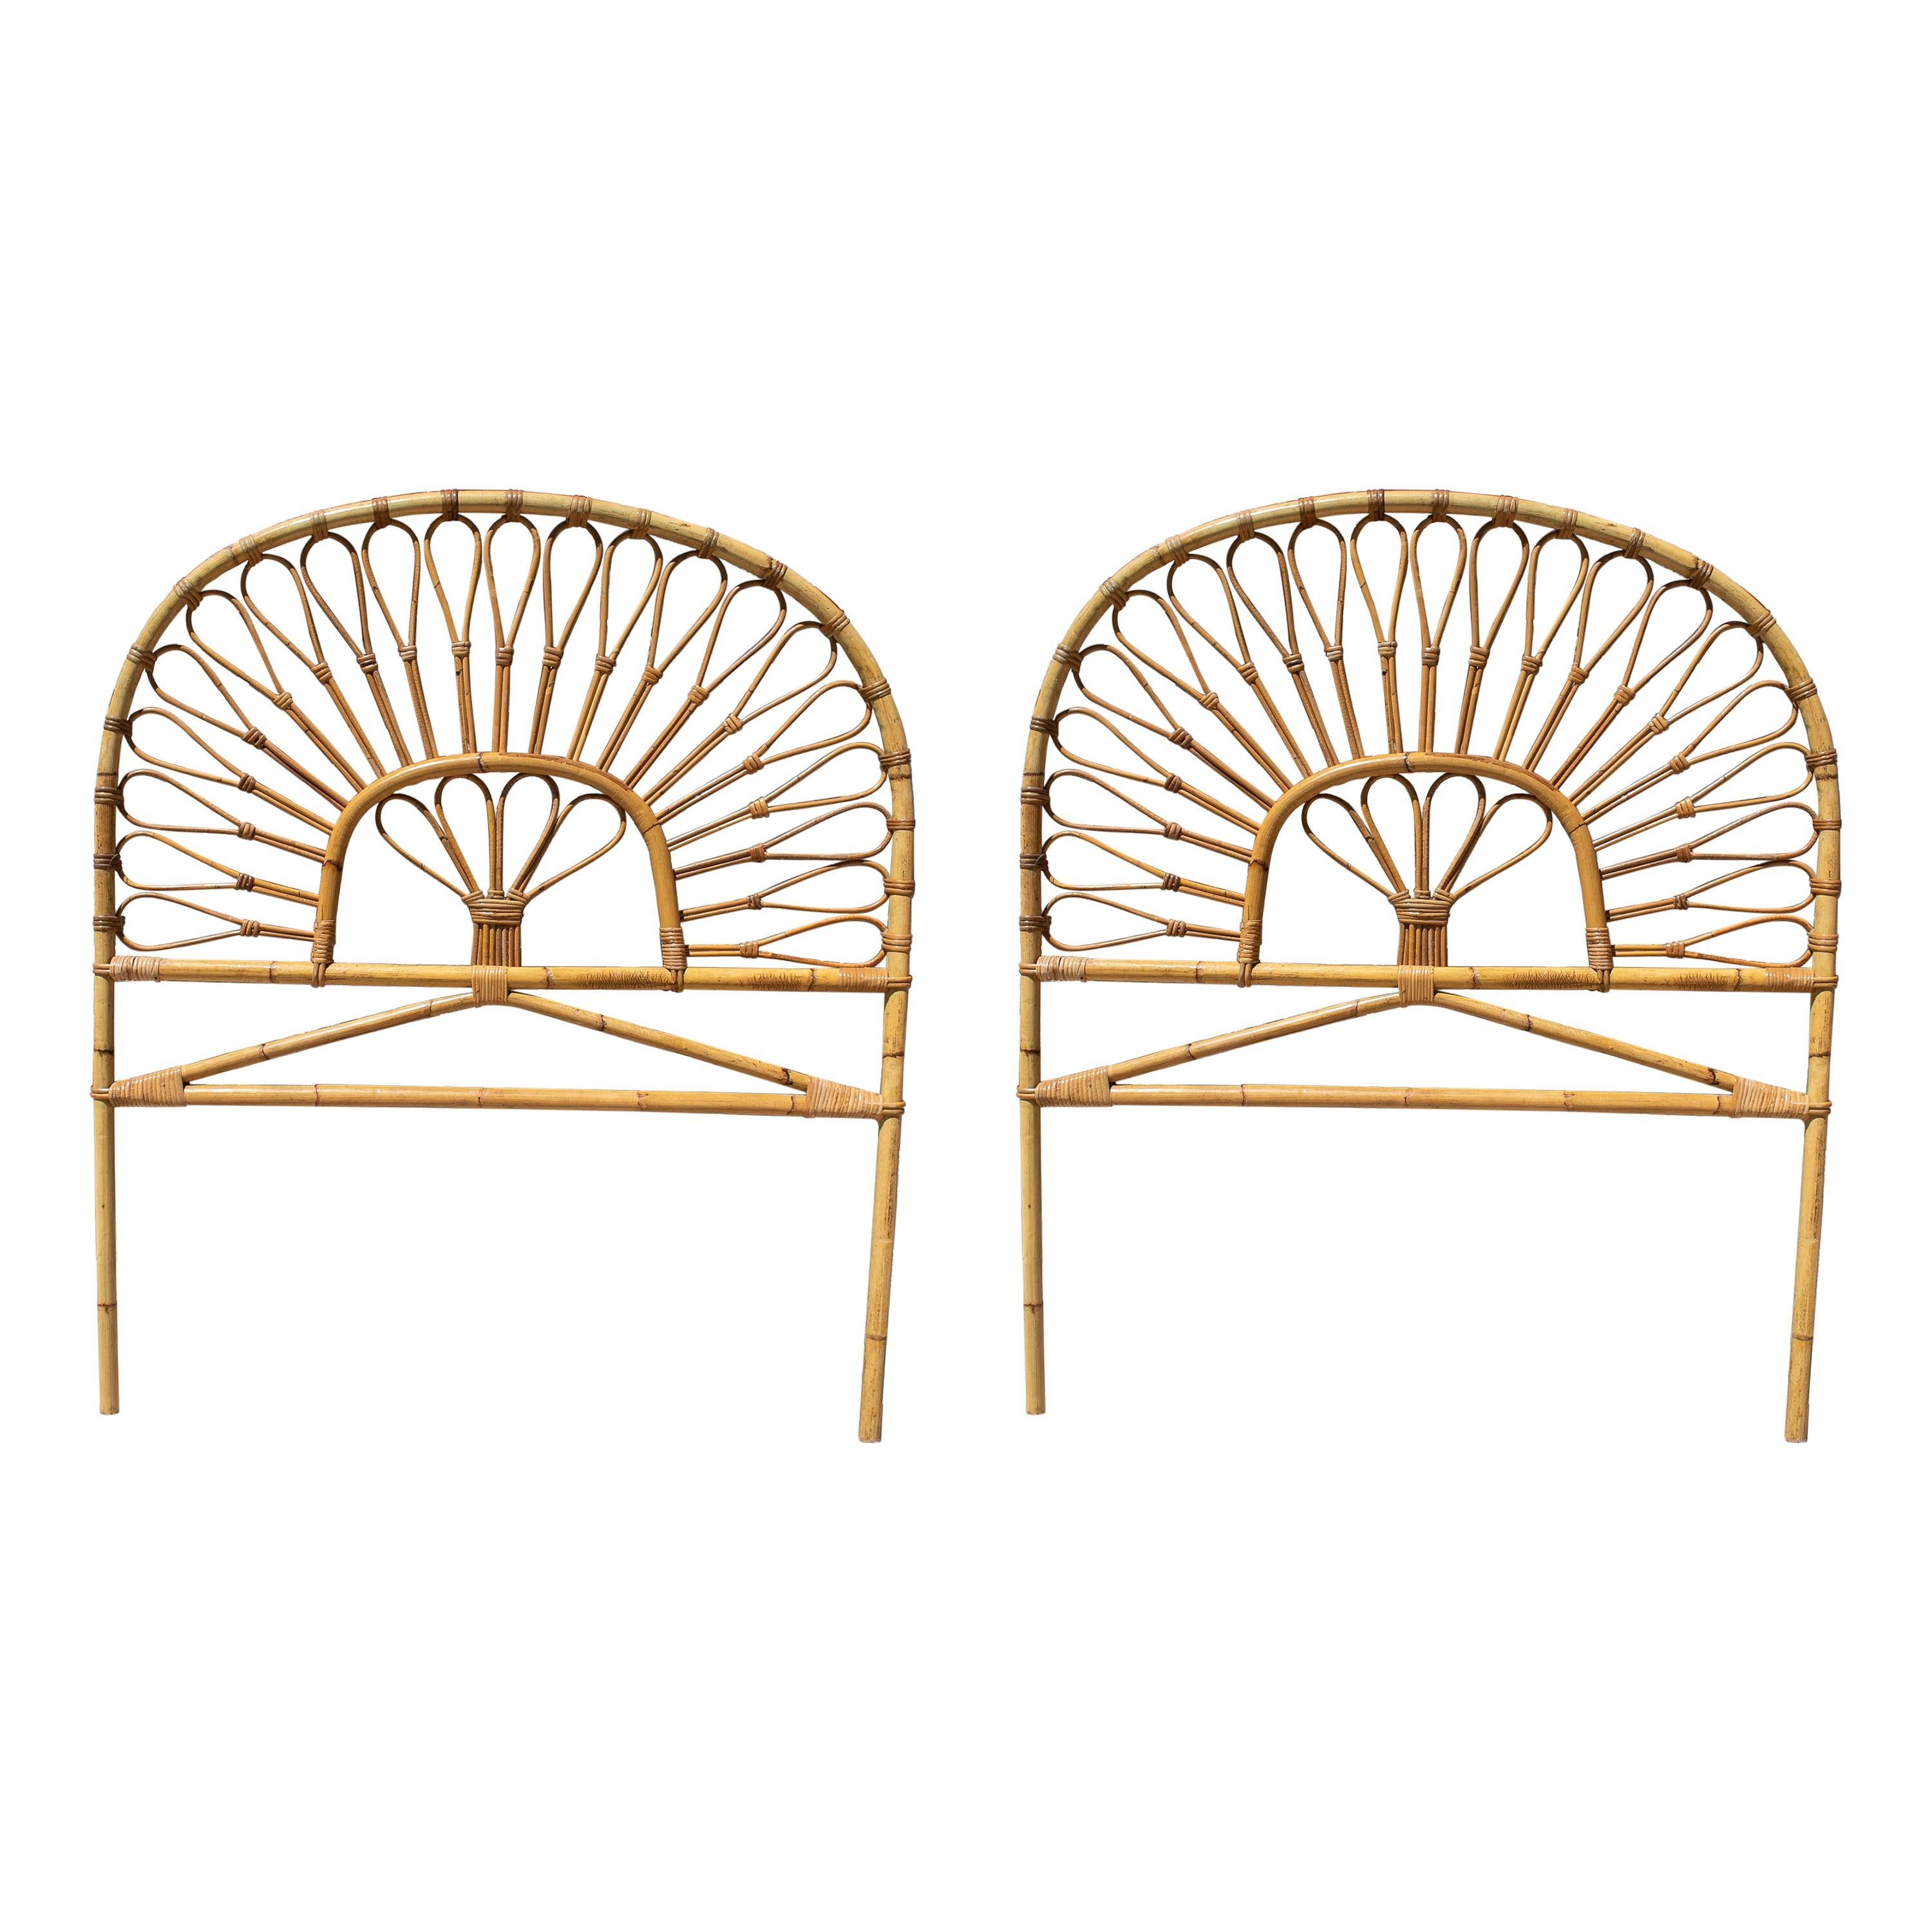 Pair of 1970s Spanish Bamboo Bed Headboards